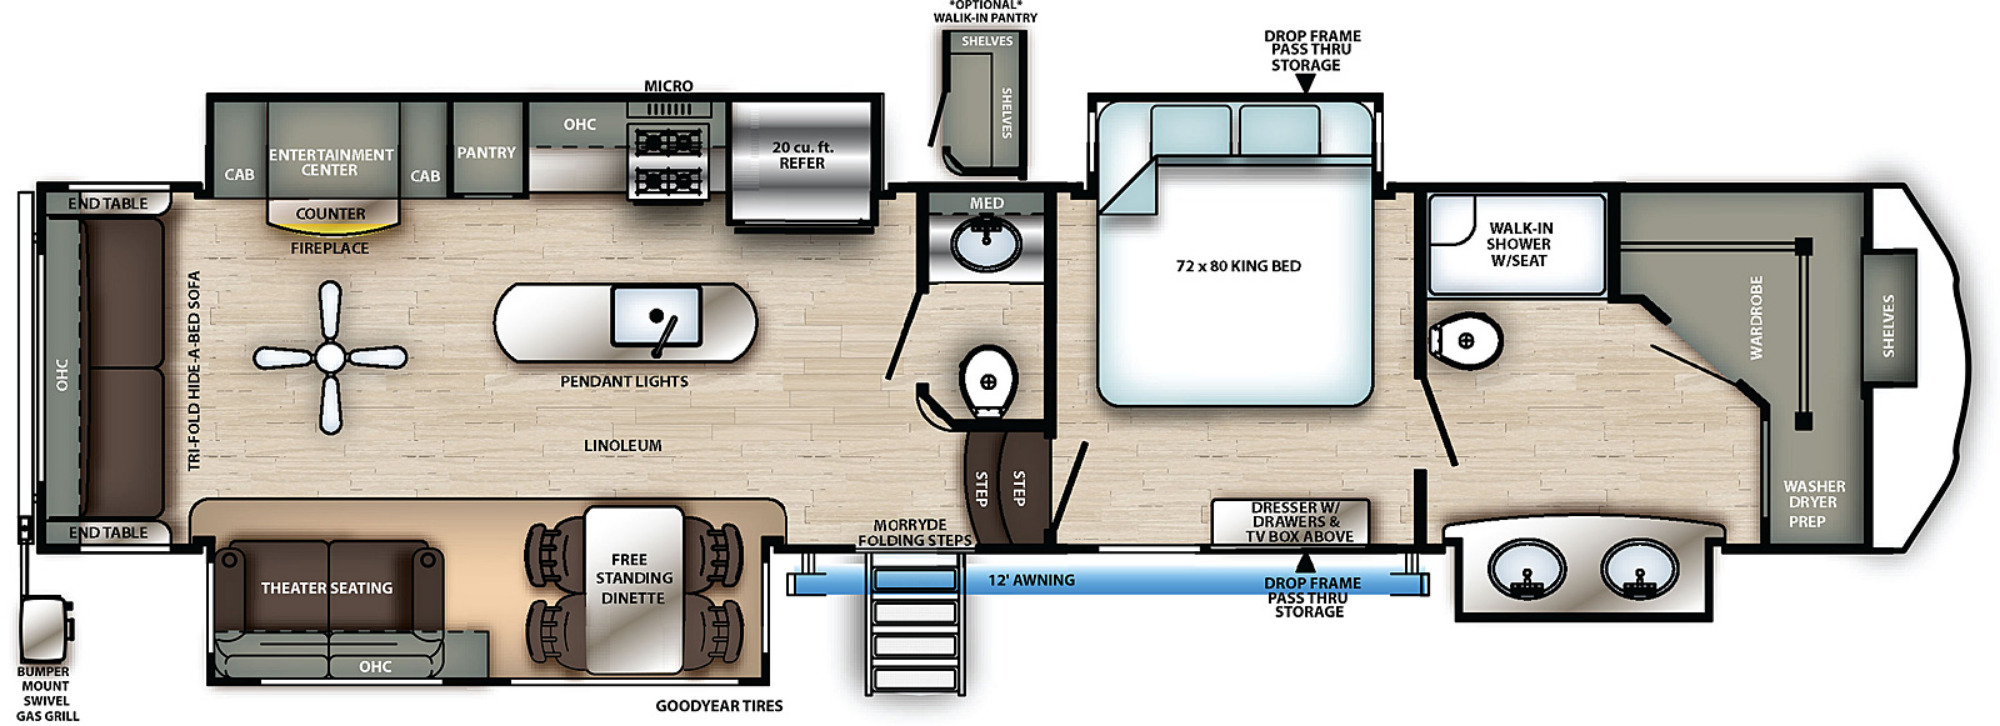 View Floor Plan for 2021 FOREST RIVER SANDPIPER 368FBDS